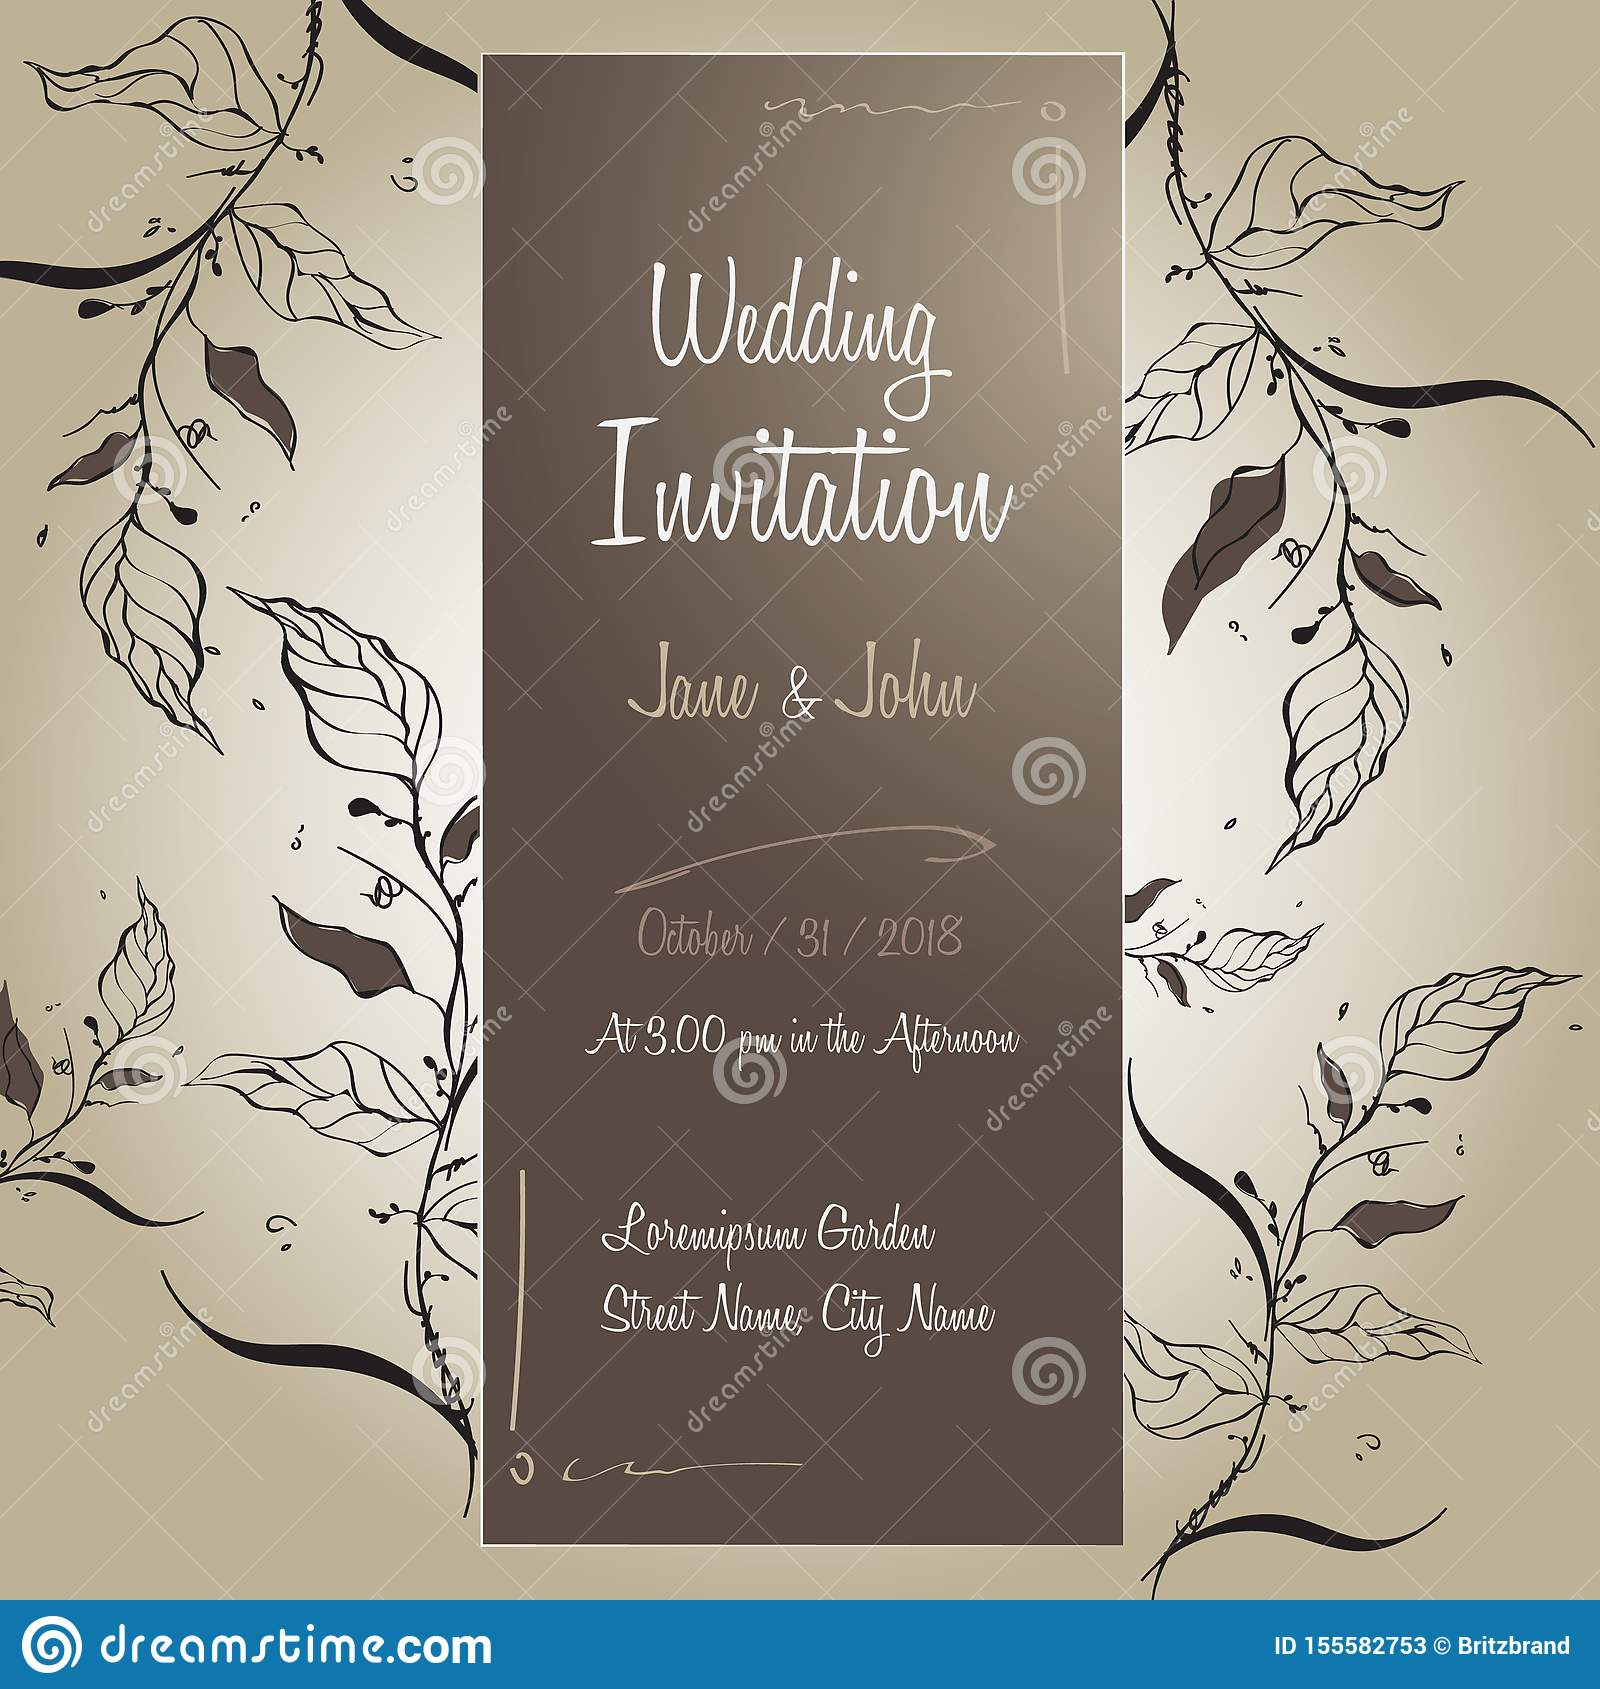 Handmade Wedding Invitation Card Template Design Floral With